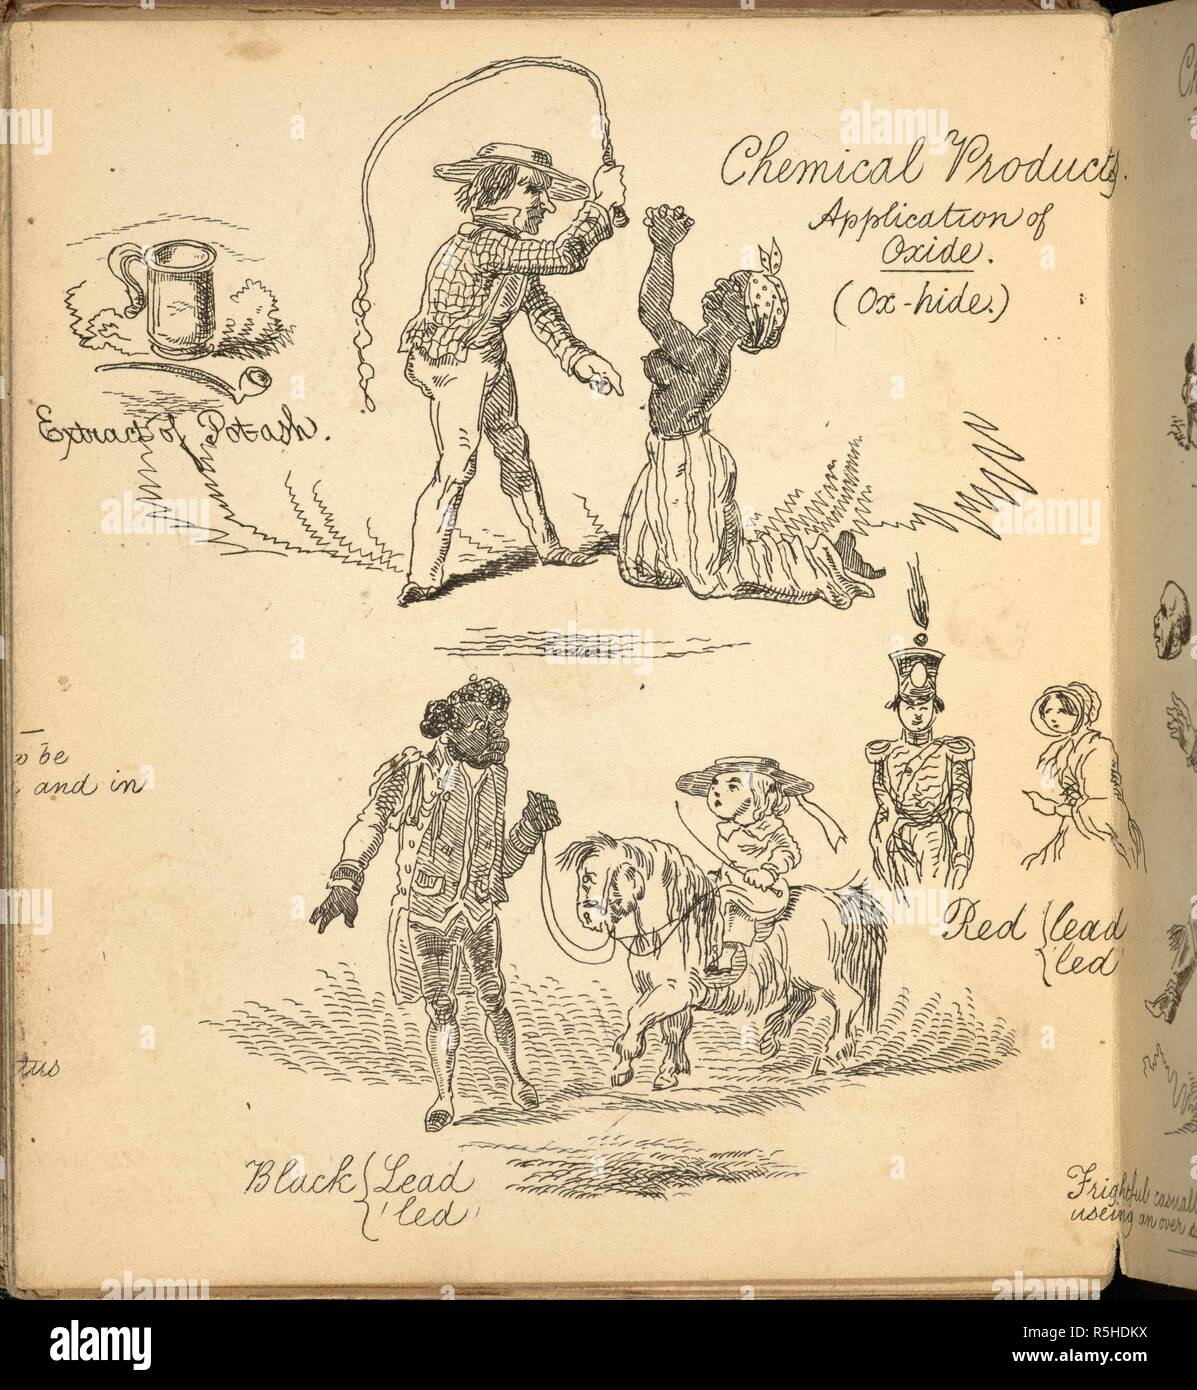 'Chemical products. Application of oxide (ox-hides.); Black { lead, led; Red lead, led. A illustration showing a slave owner whipping a slave. A servant leading a pony by a rein, while a child rides it. A soldier and a lady. . The House that Paxton built. By G. A. S. (G. A. Sala). [An engraved comic account of the Exhibition of 1851.]. London : Ironbrace, Woodenhead & Co., 1851. Source: 012331.de.83 detail of a fold-out. Author: Sala, George Augustus Henry Fairfield. - Stock Image